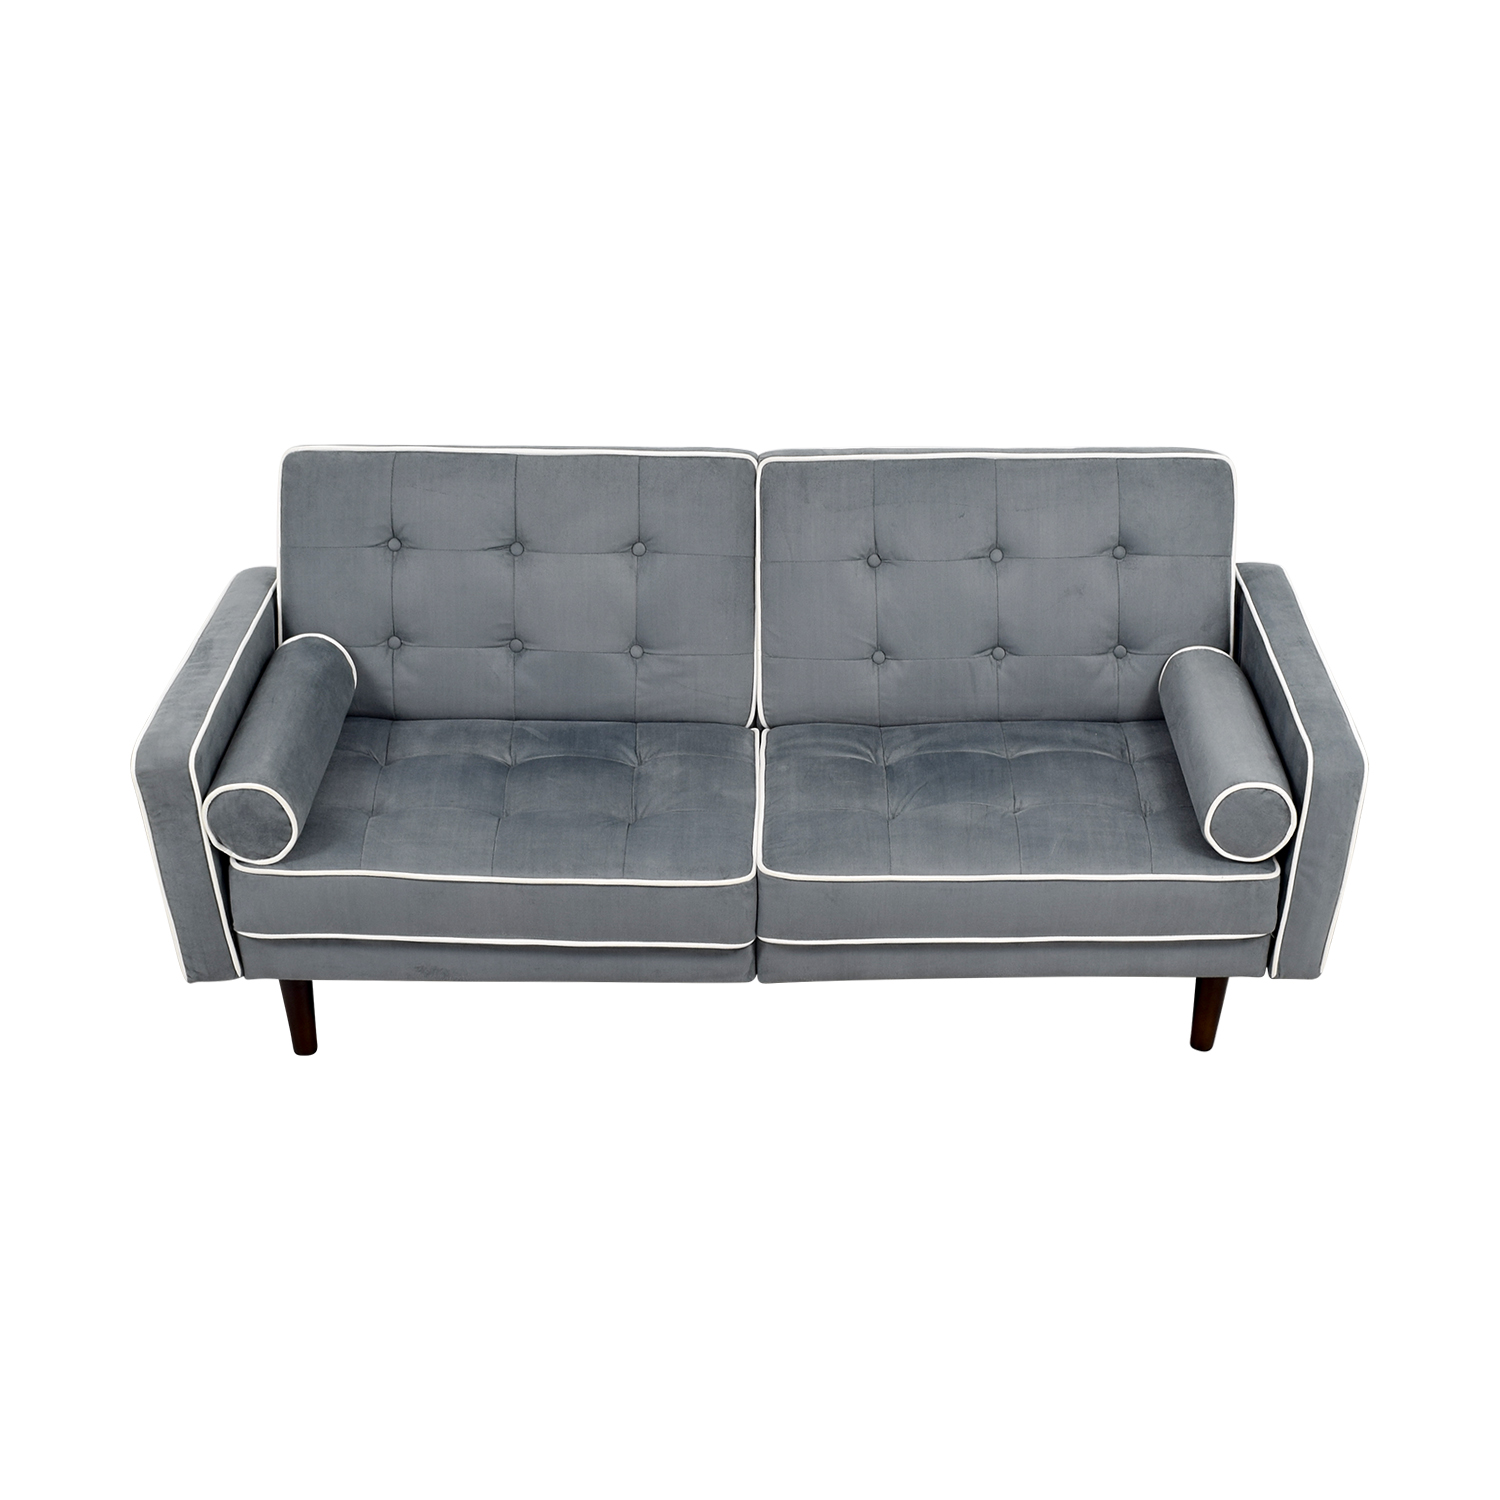 Wayfair Wayfair Grey Tufted Sofa Bed Grey